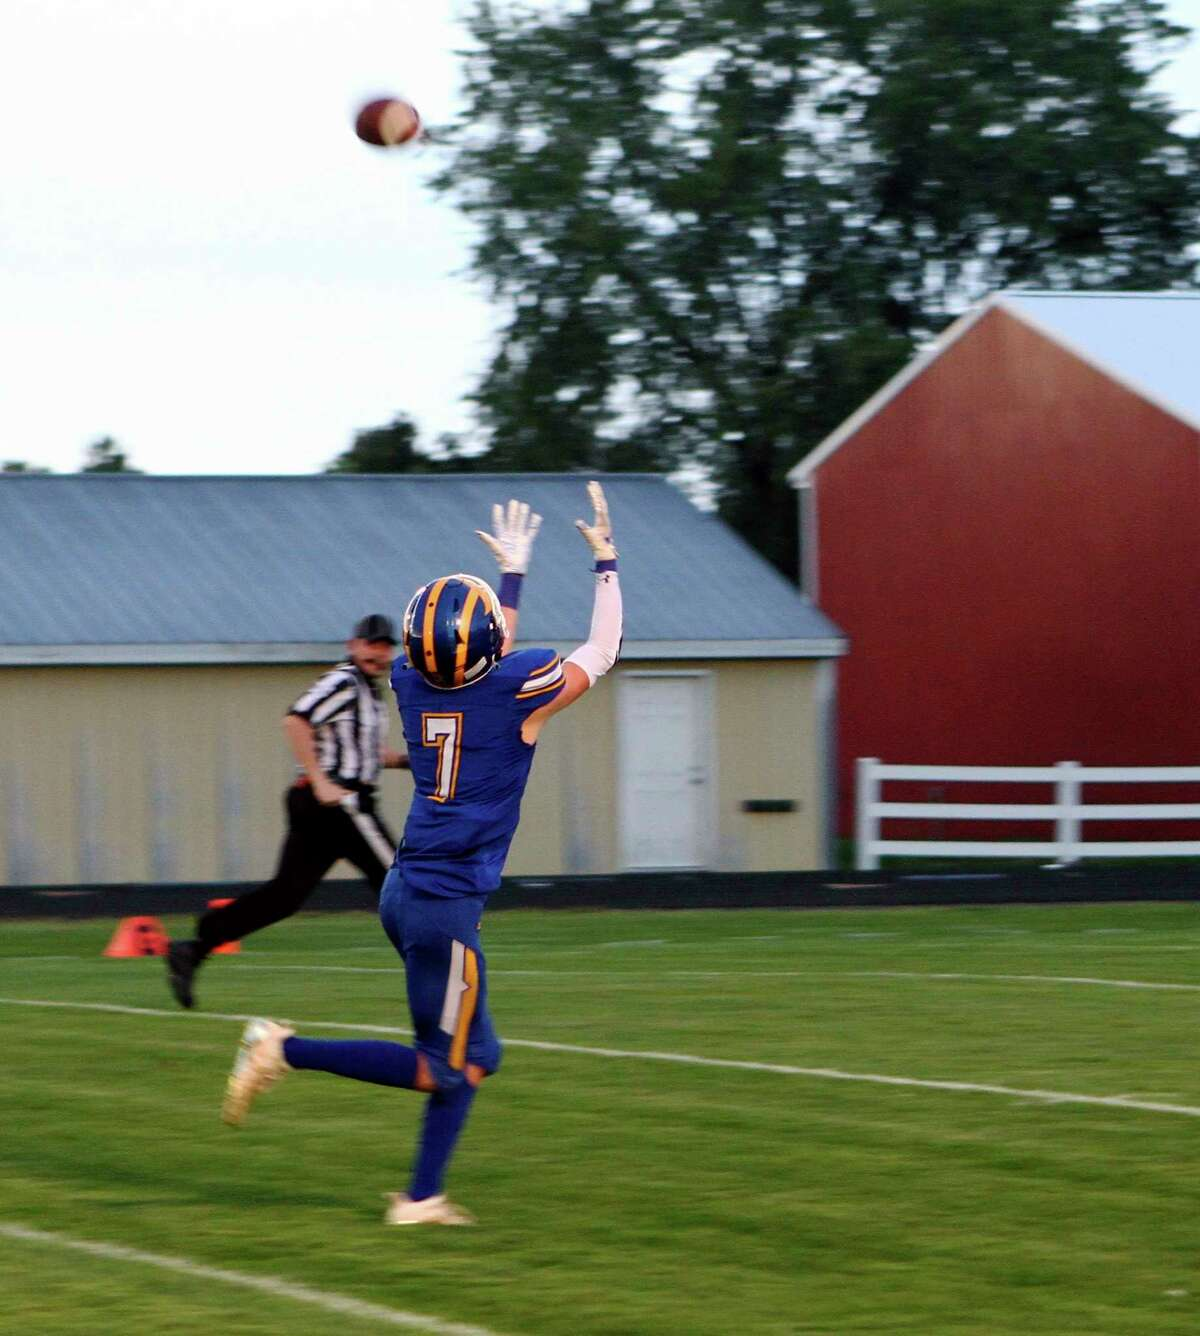 Evart junior wide receiver Jake Ladd chases down a long pass on his way to the end zone during the Wildcats' victory over Manton on Friday night at Tom Smith Memorial Stadium in Evart. (Pioneer photo/Joe Judd)